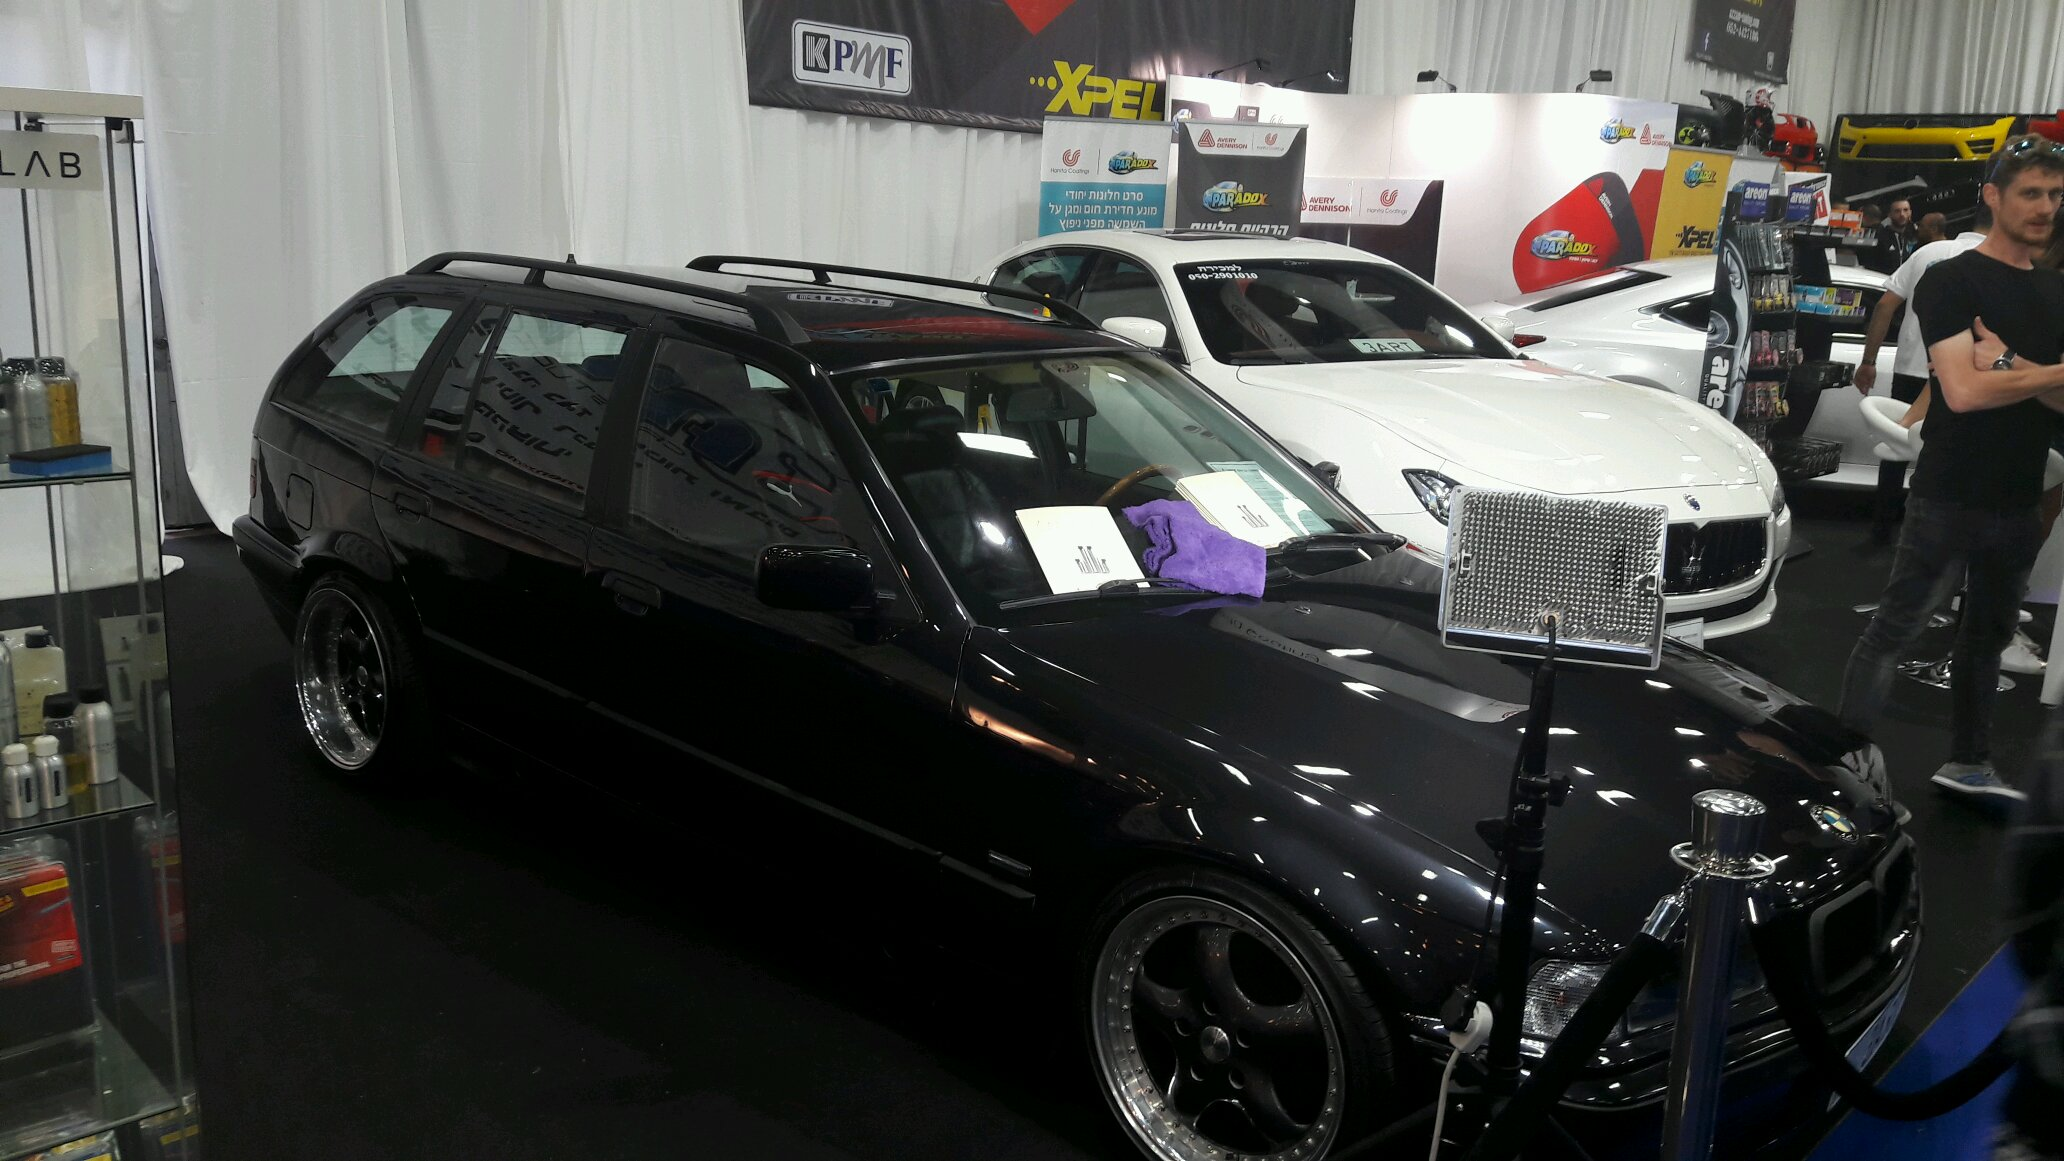 Saw A Stanced Bmw Wagon At A Car Show Today - Car shows today near me